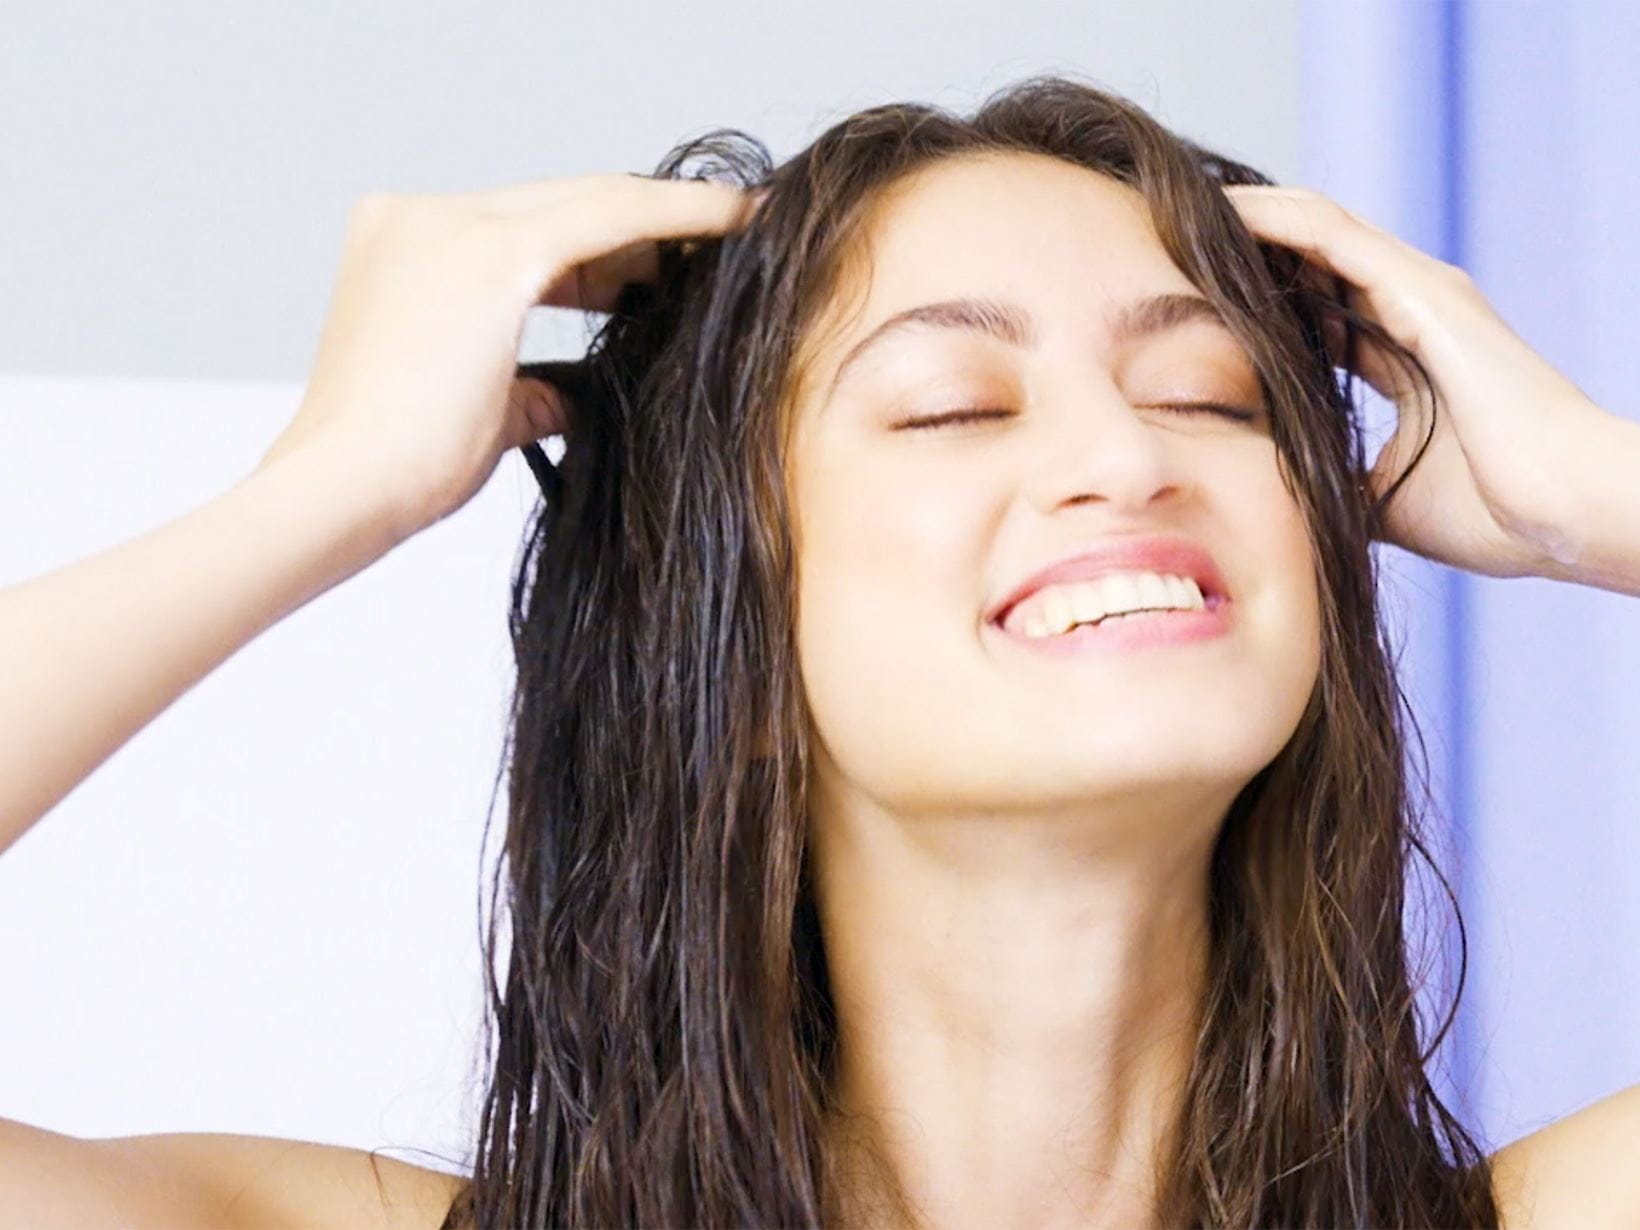 woman smiling washing her hair now she knows how often to shower